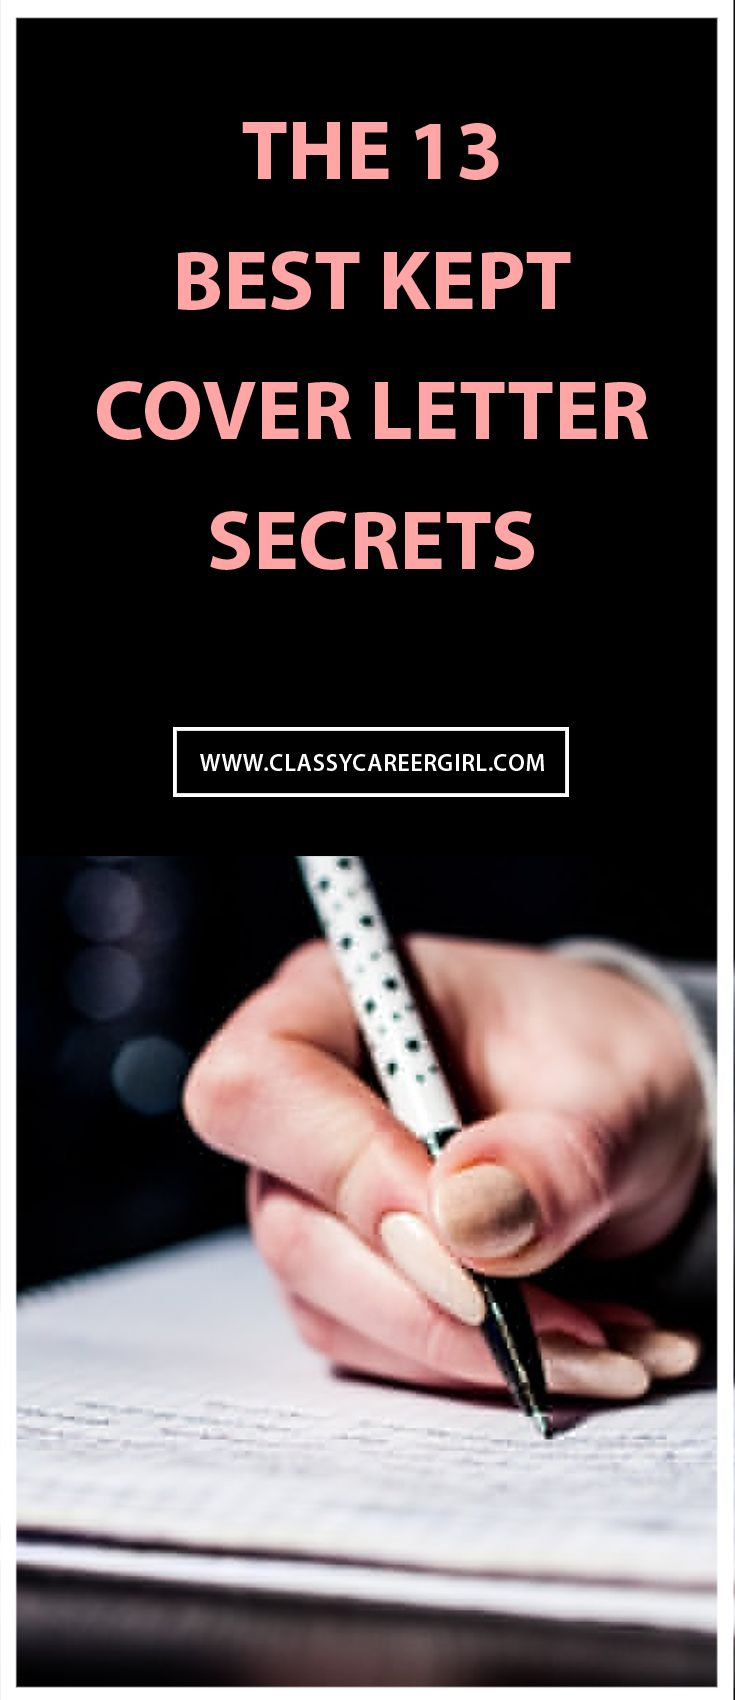 The 13 Best Kept Cover Letter Secrets 1476